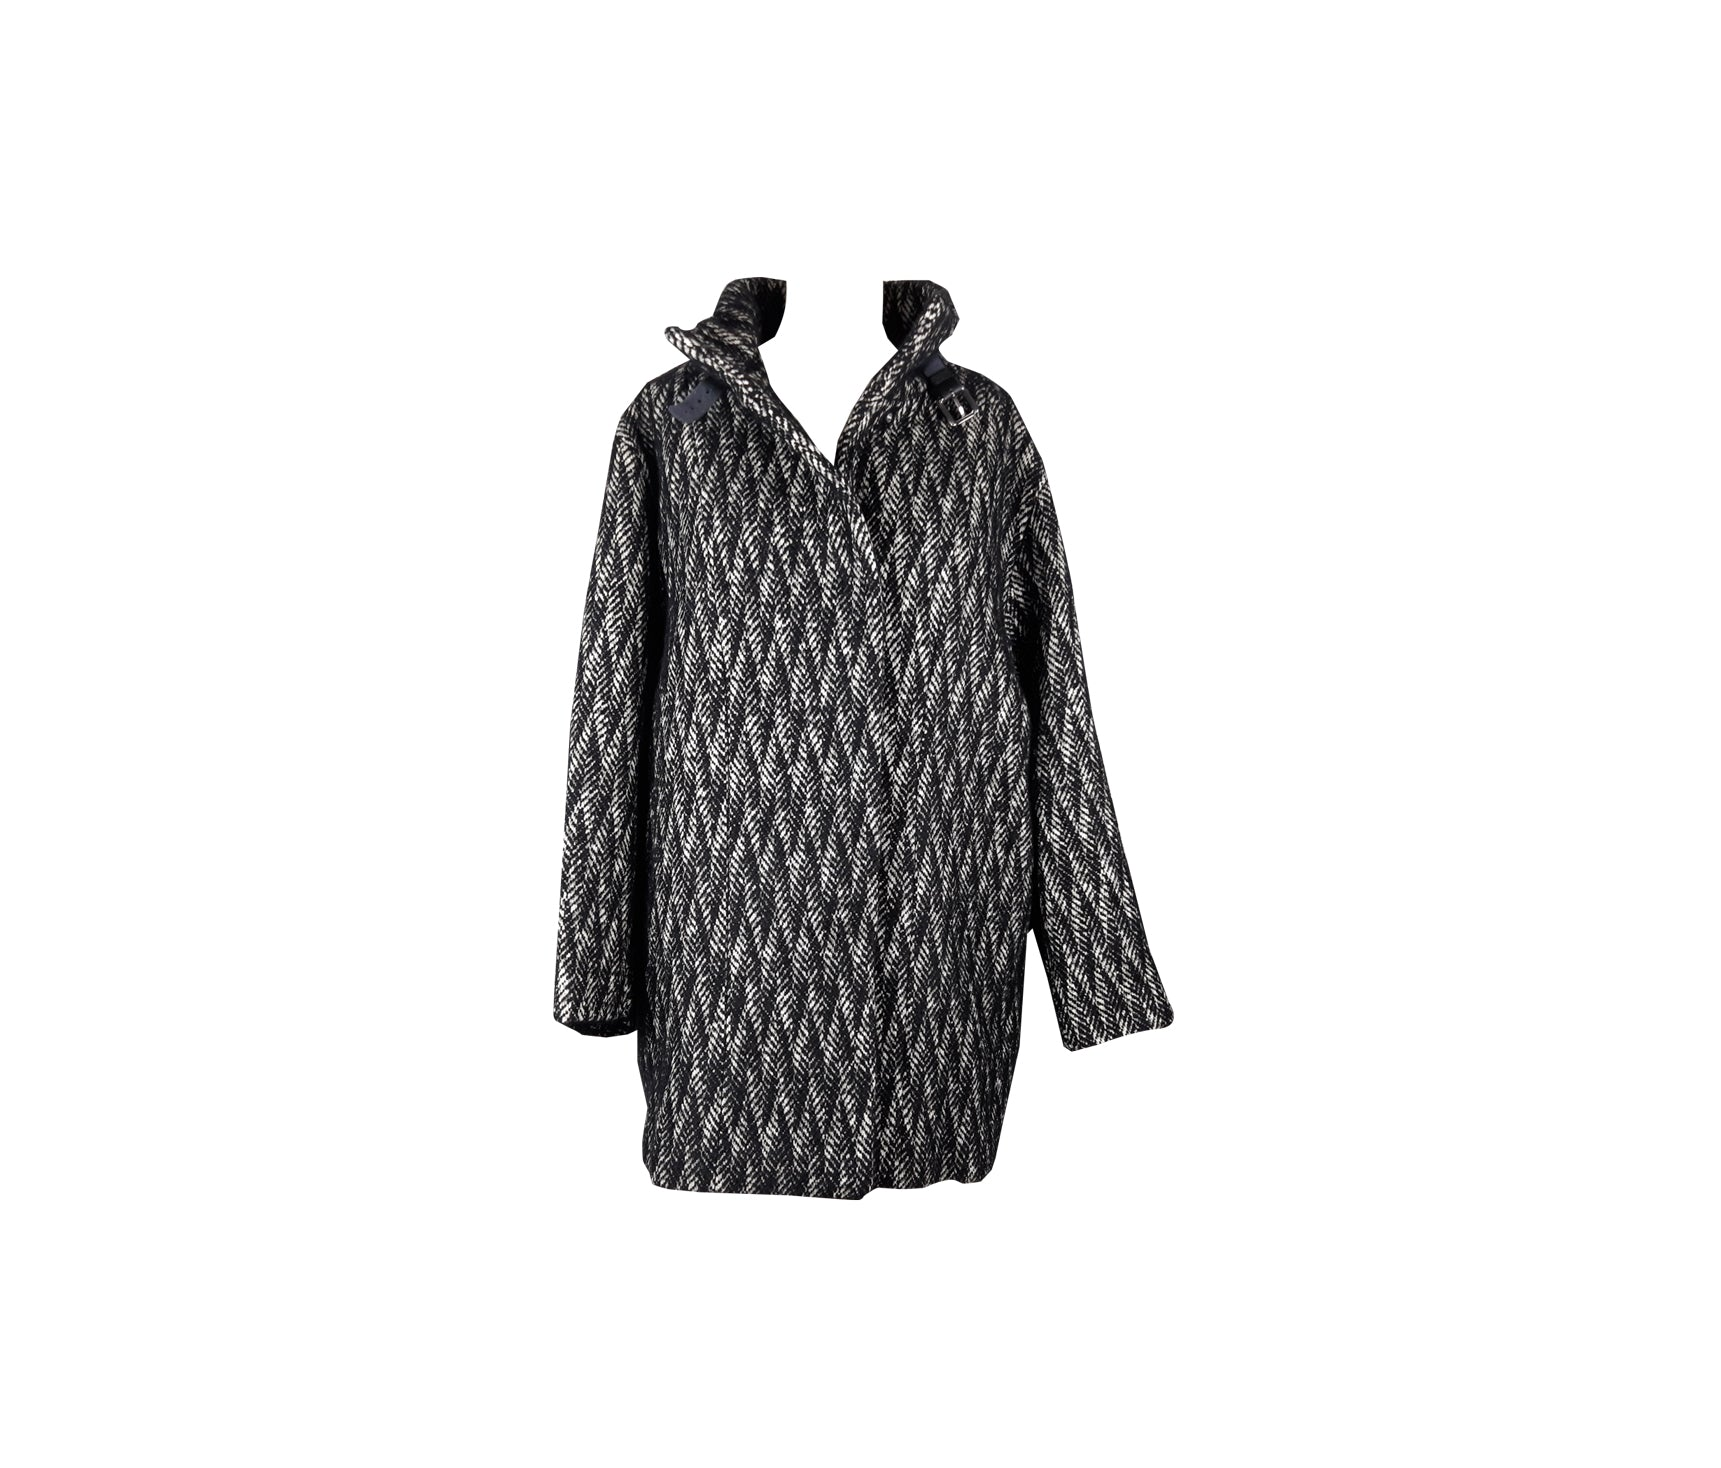 Gerard Darel Alpaca and Mohair Herringbone Coat Size 46 (EU)